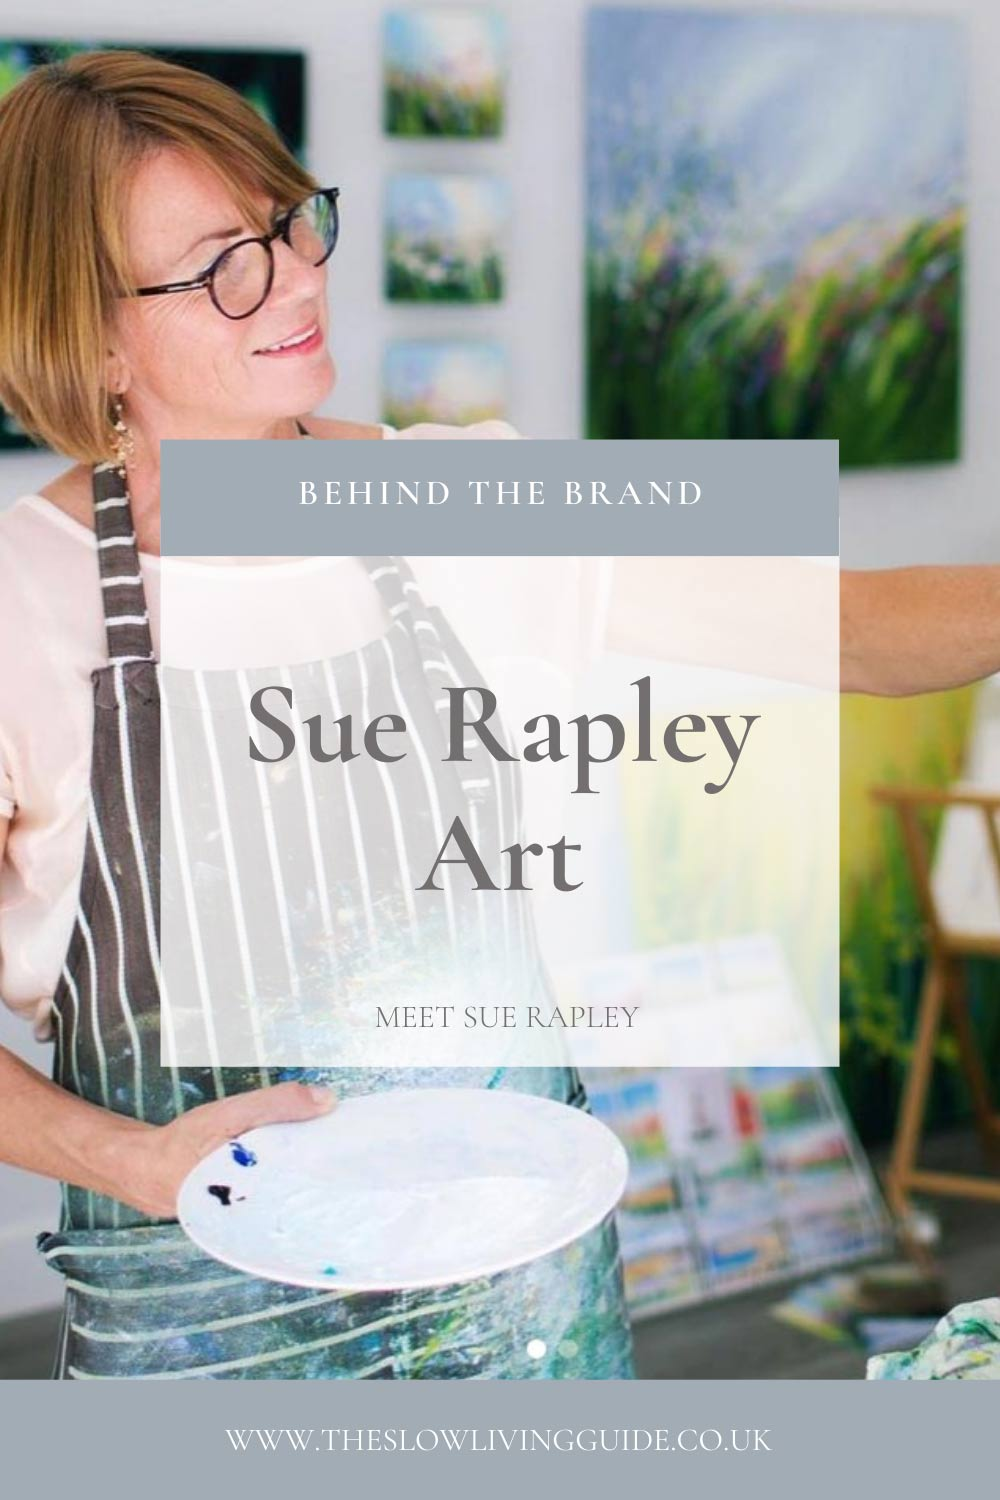 pin image for interview with Sue Rapley Art, showing Sue Rapley at work in her studio